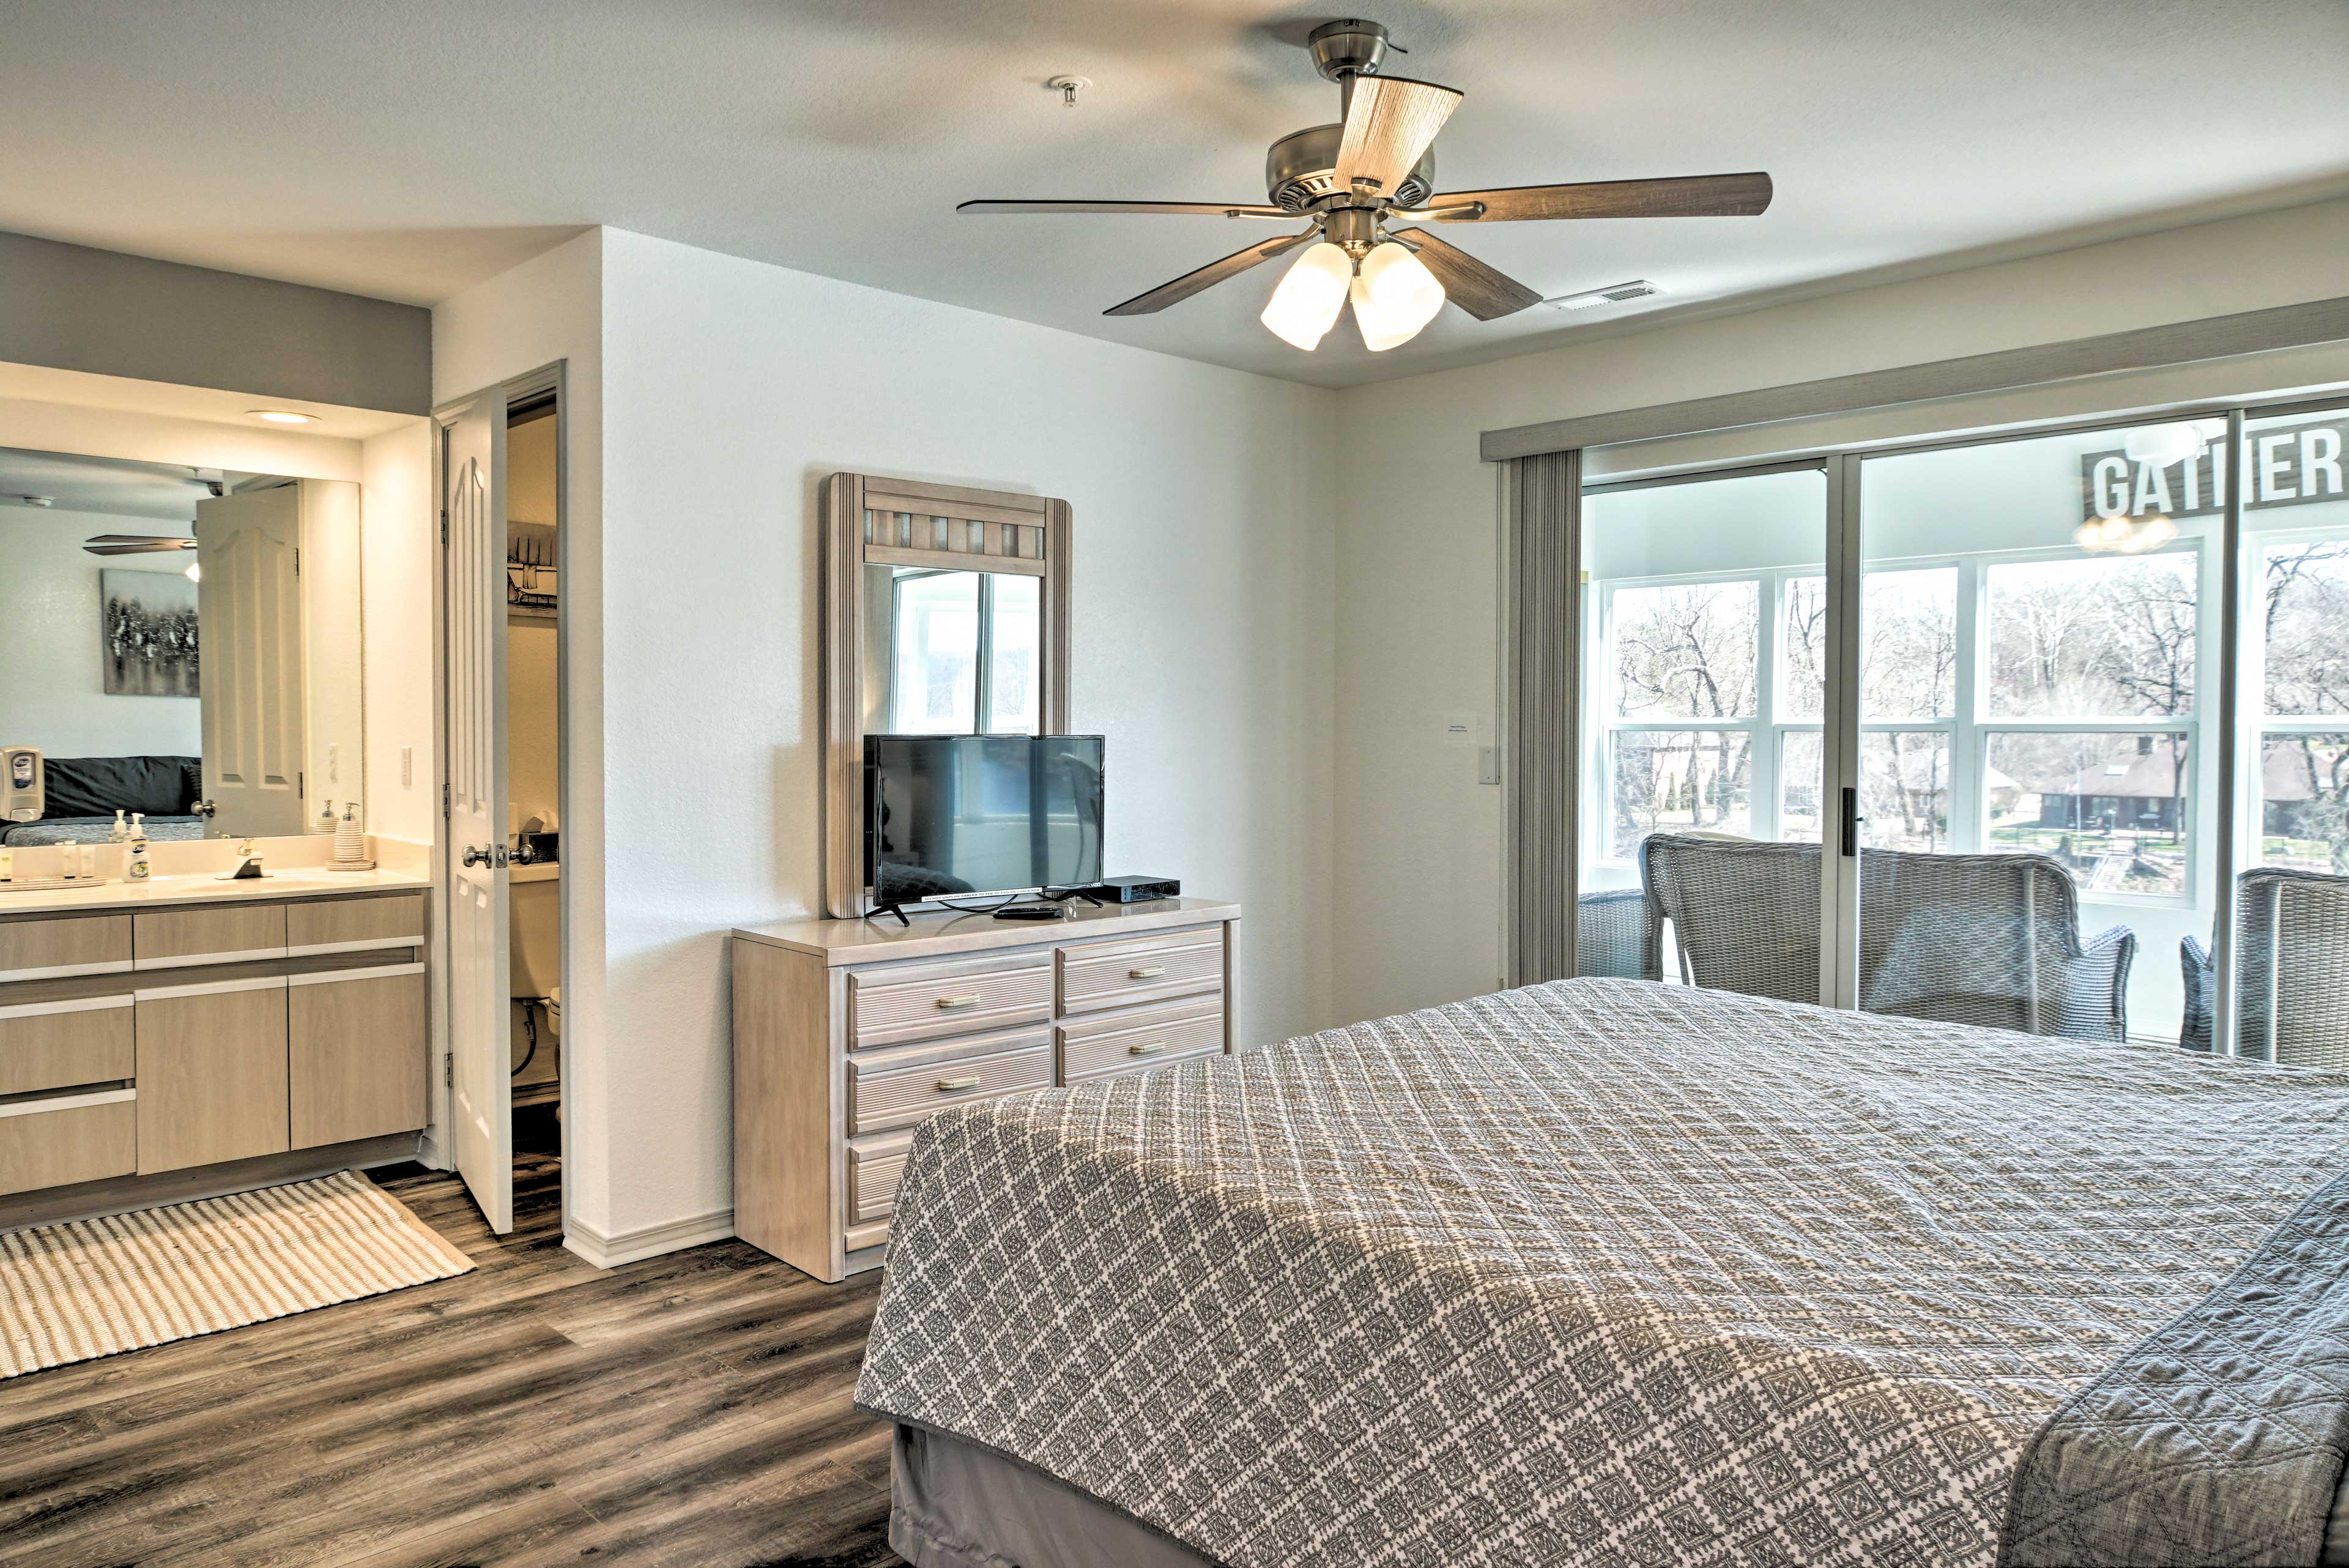 Bedroom 1 | King Bed | Cable TV | Sunroom Access